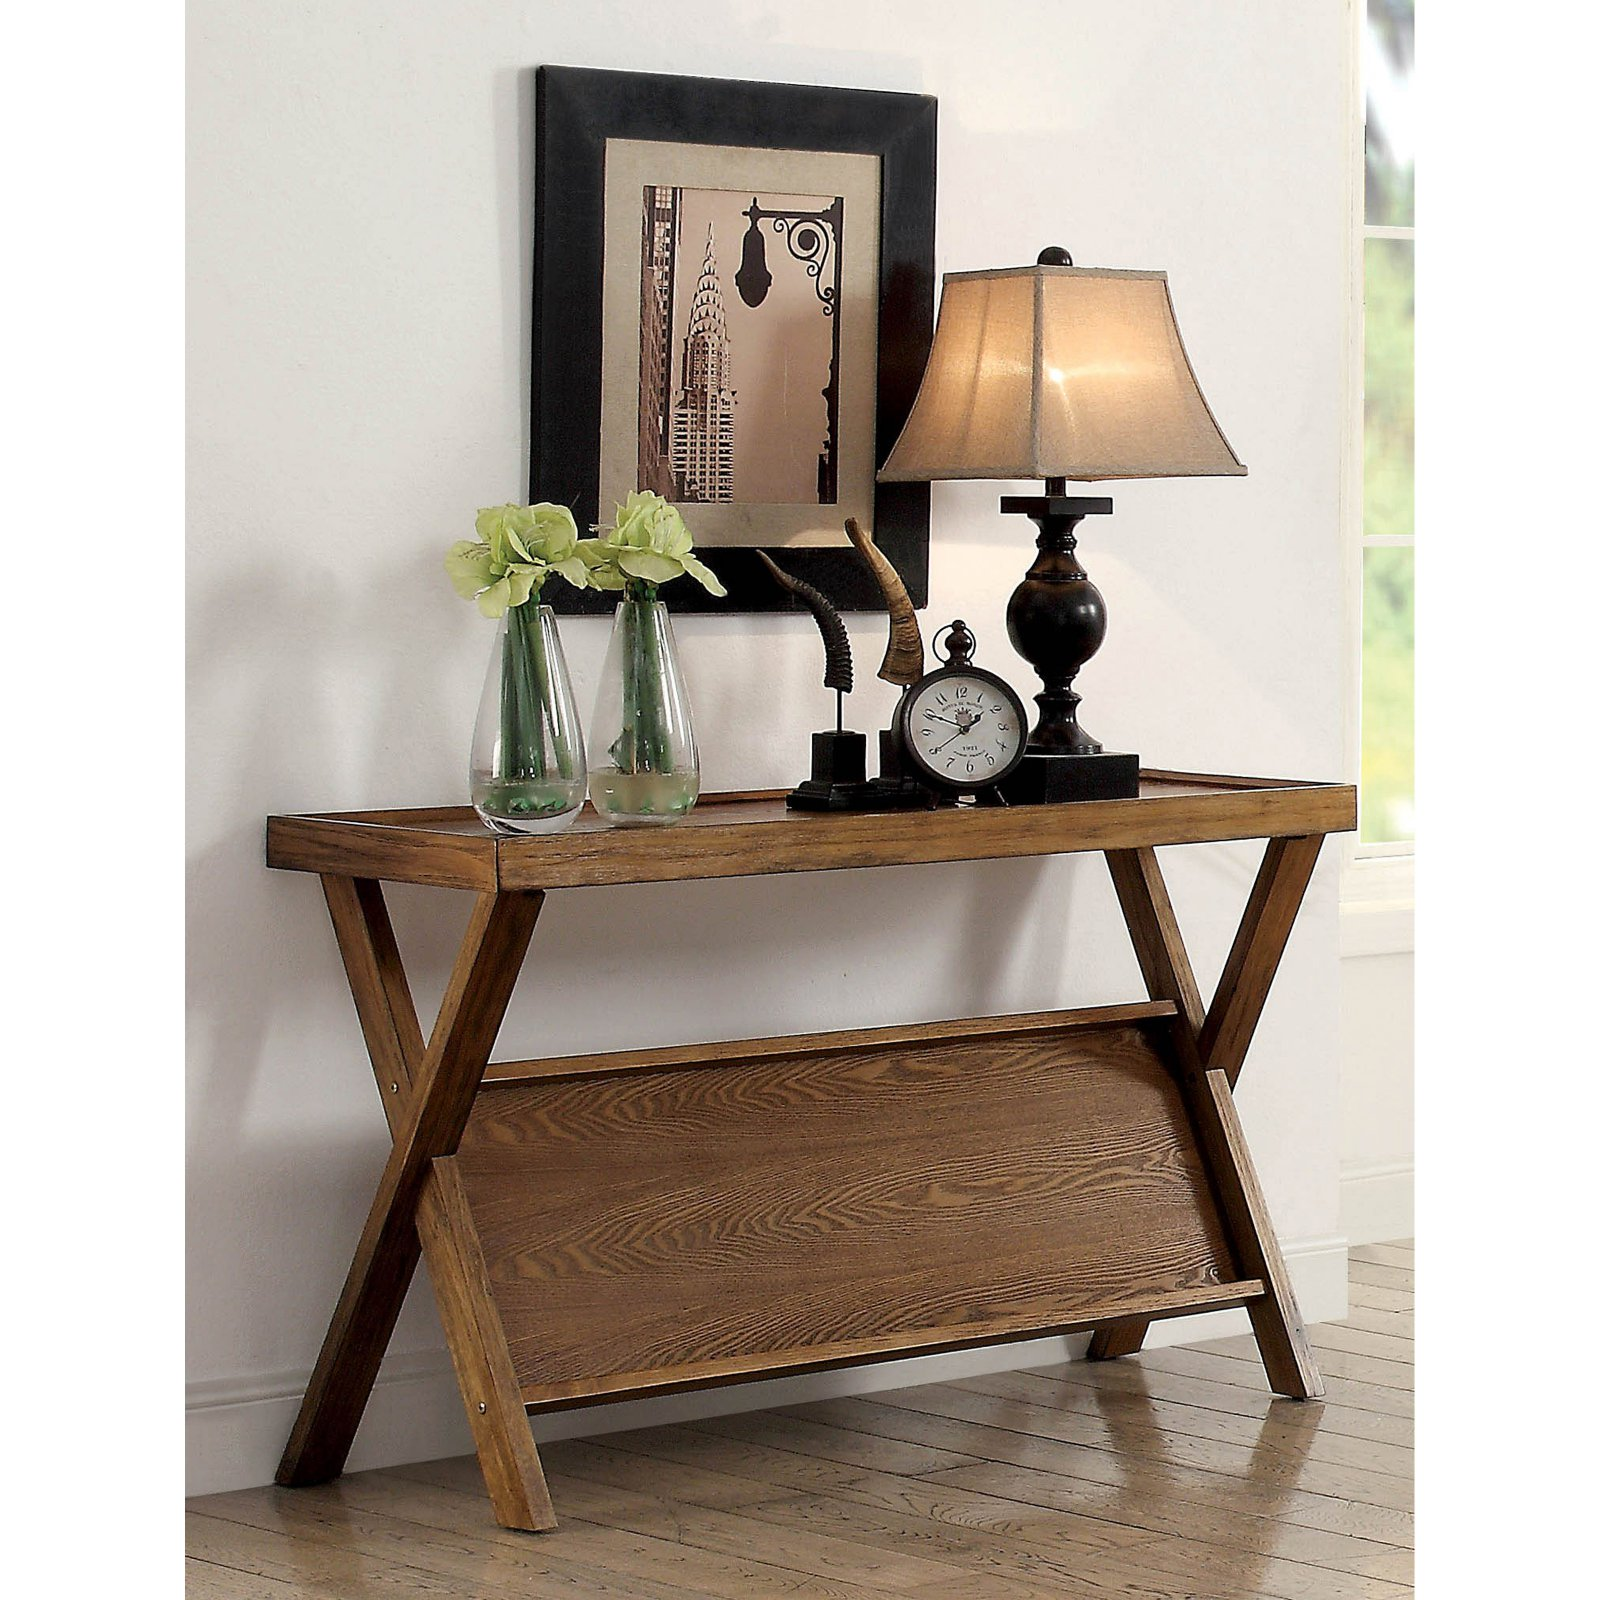 Furniture of America Catalina Rustic Angled Shelf Console Table